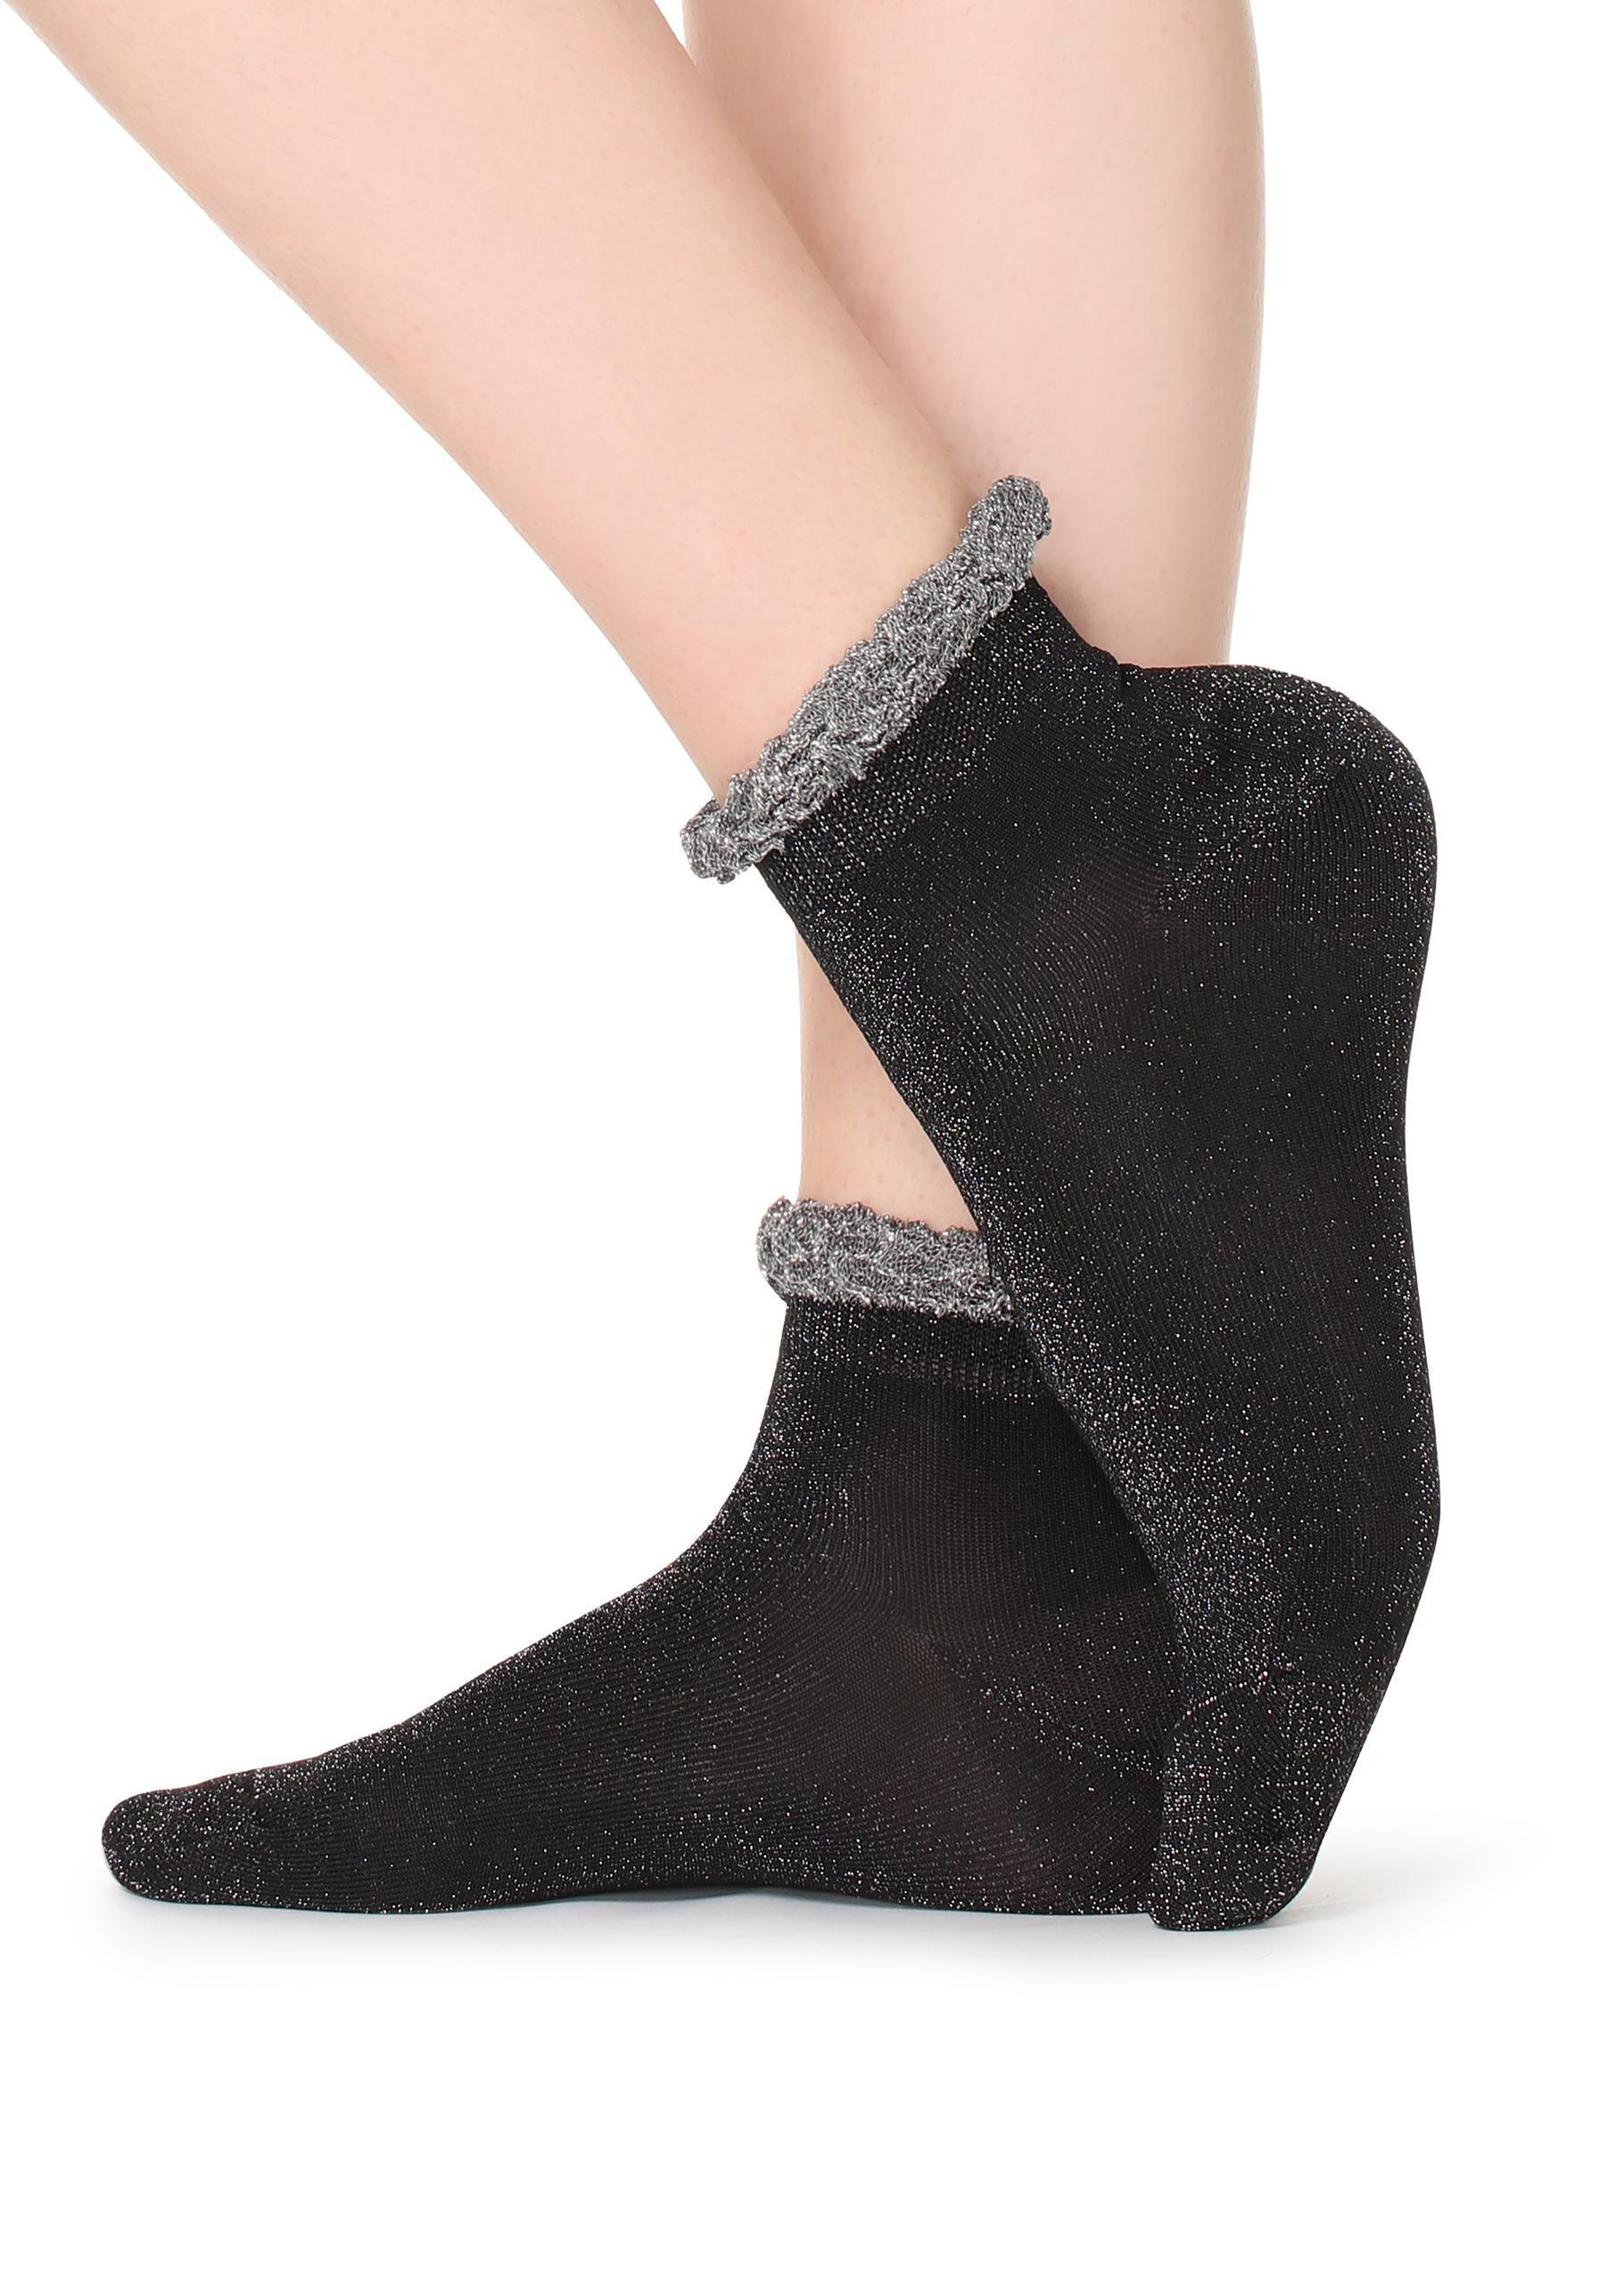 39aebdb51 Lyst - Calzedonia Short Patterned Cotton Socks in Black